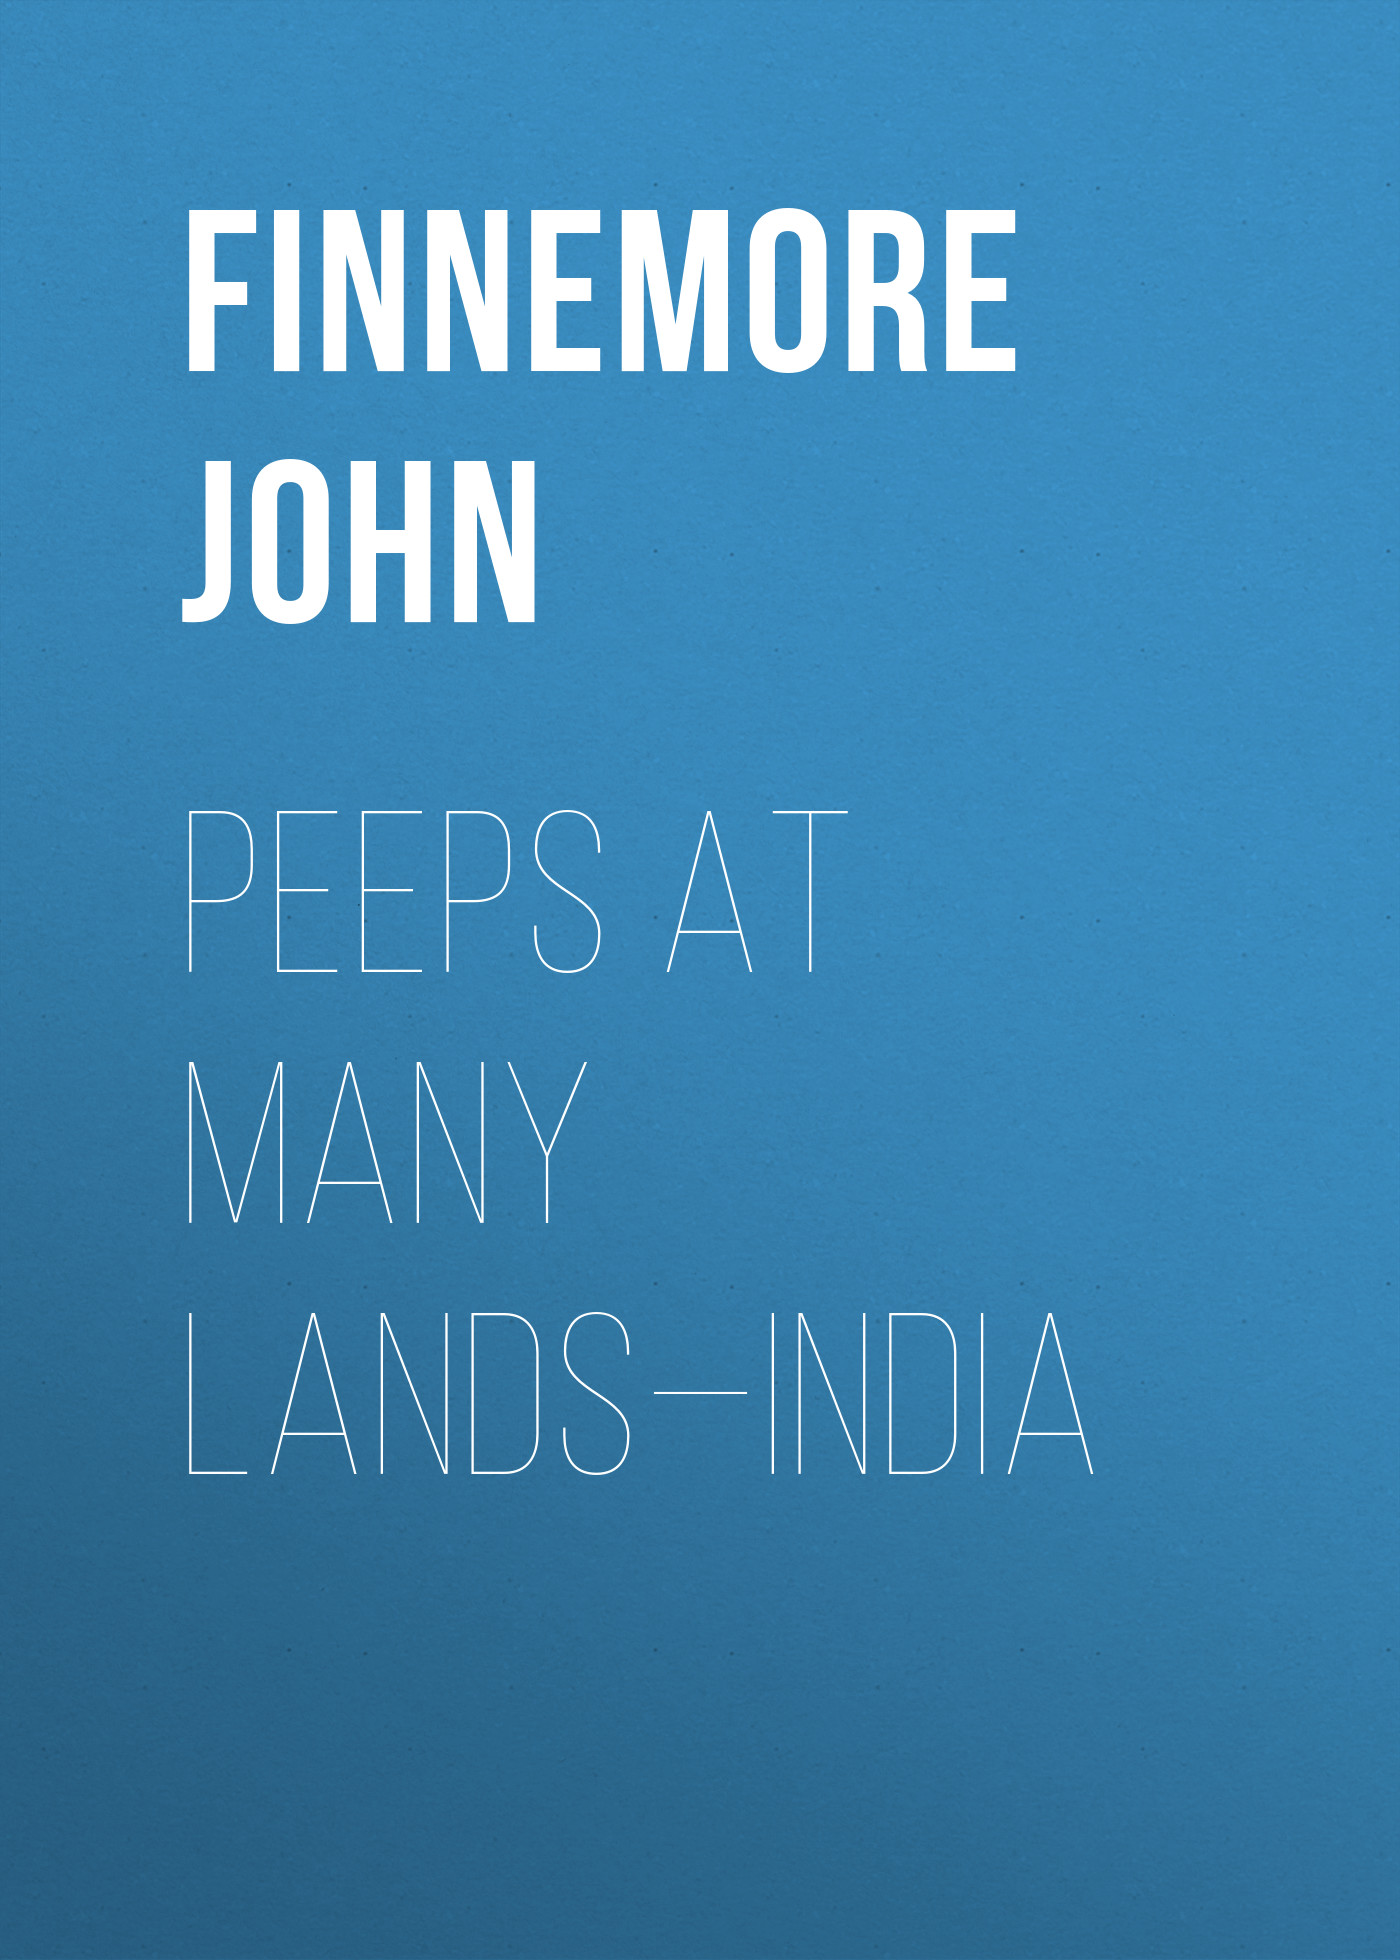 Finnemore John Peeps at Many Lands—India